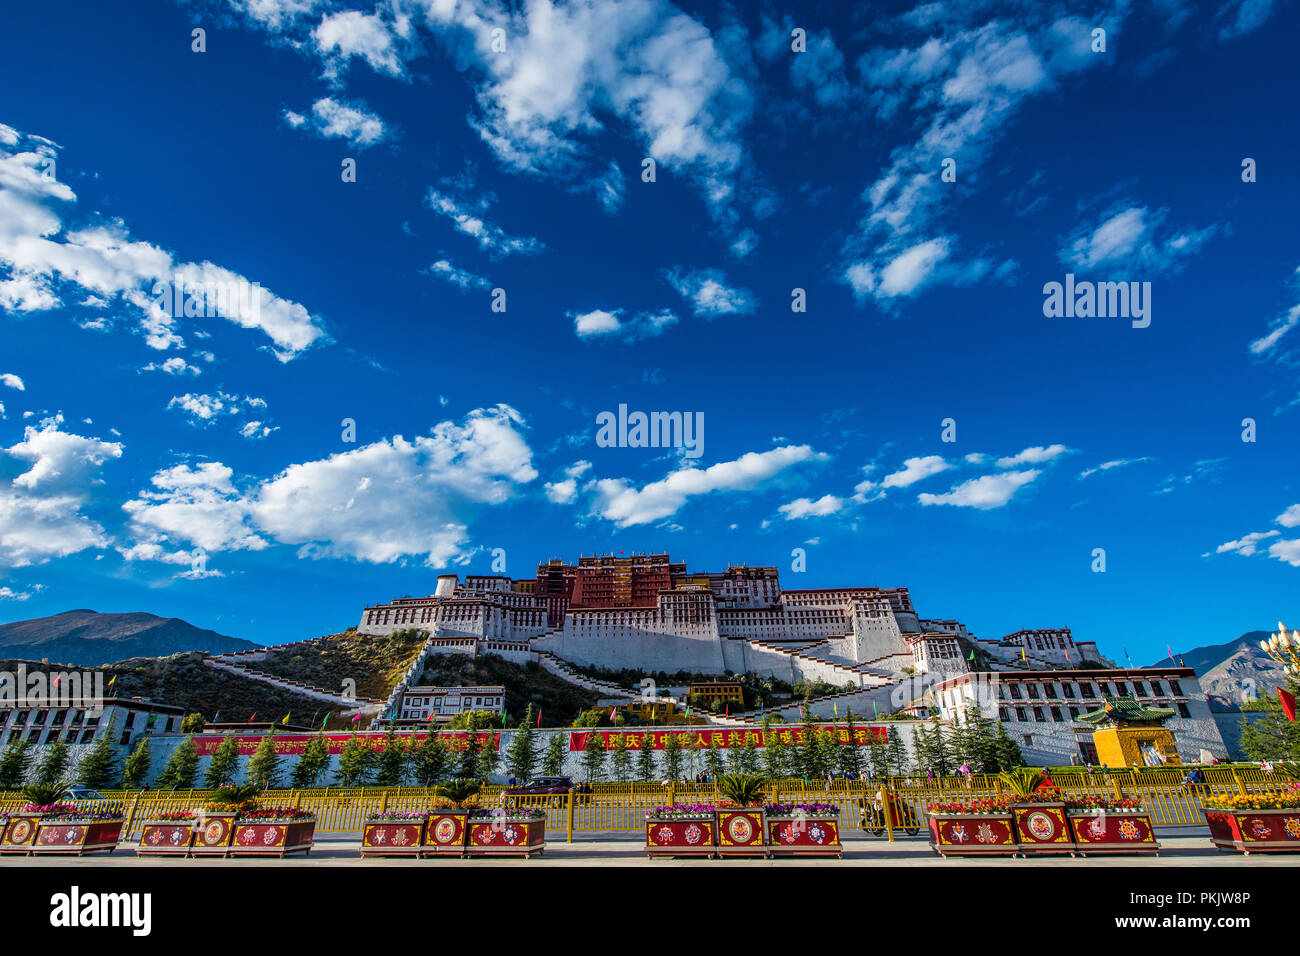 The potala palace in Lhasa in Tibet - Stock Image